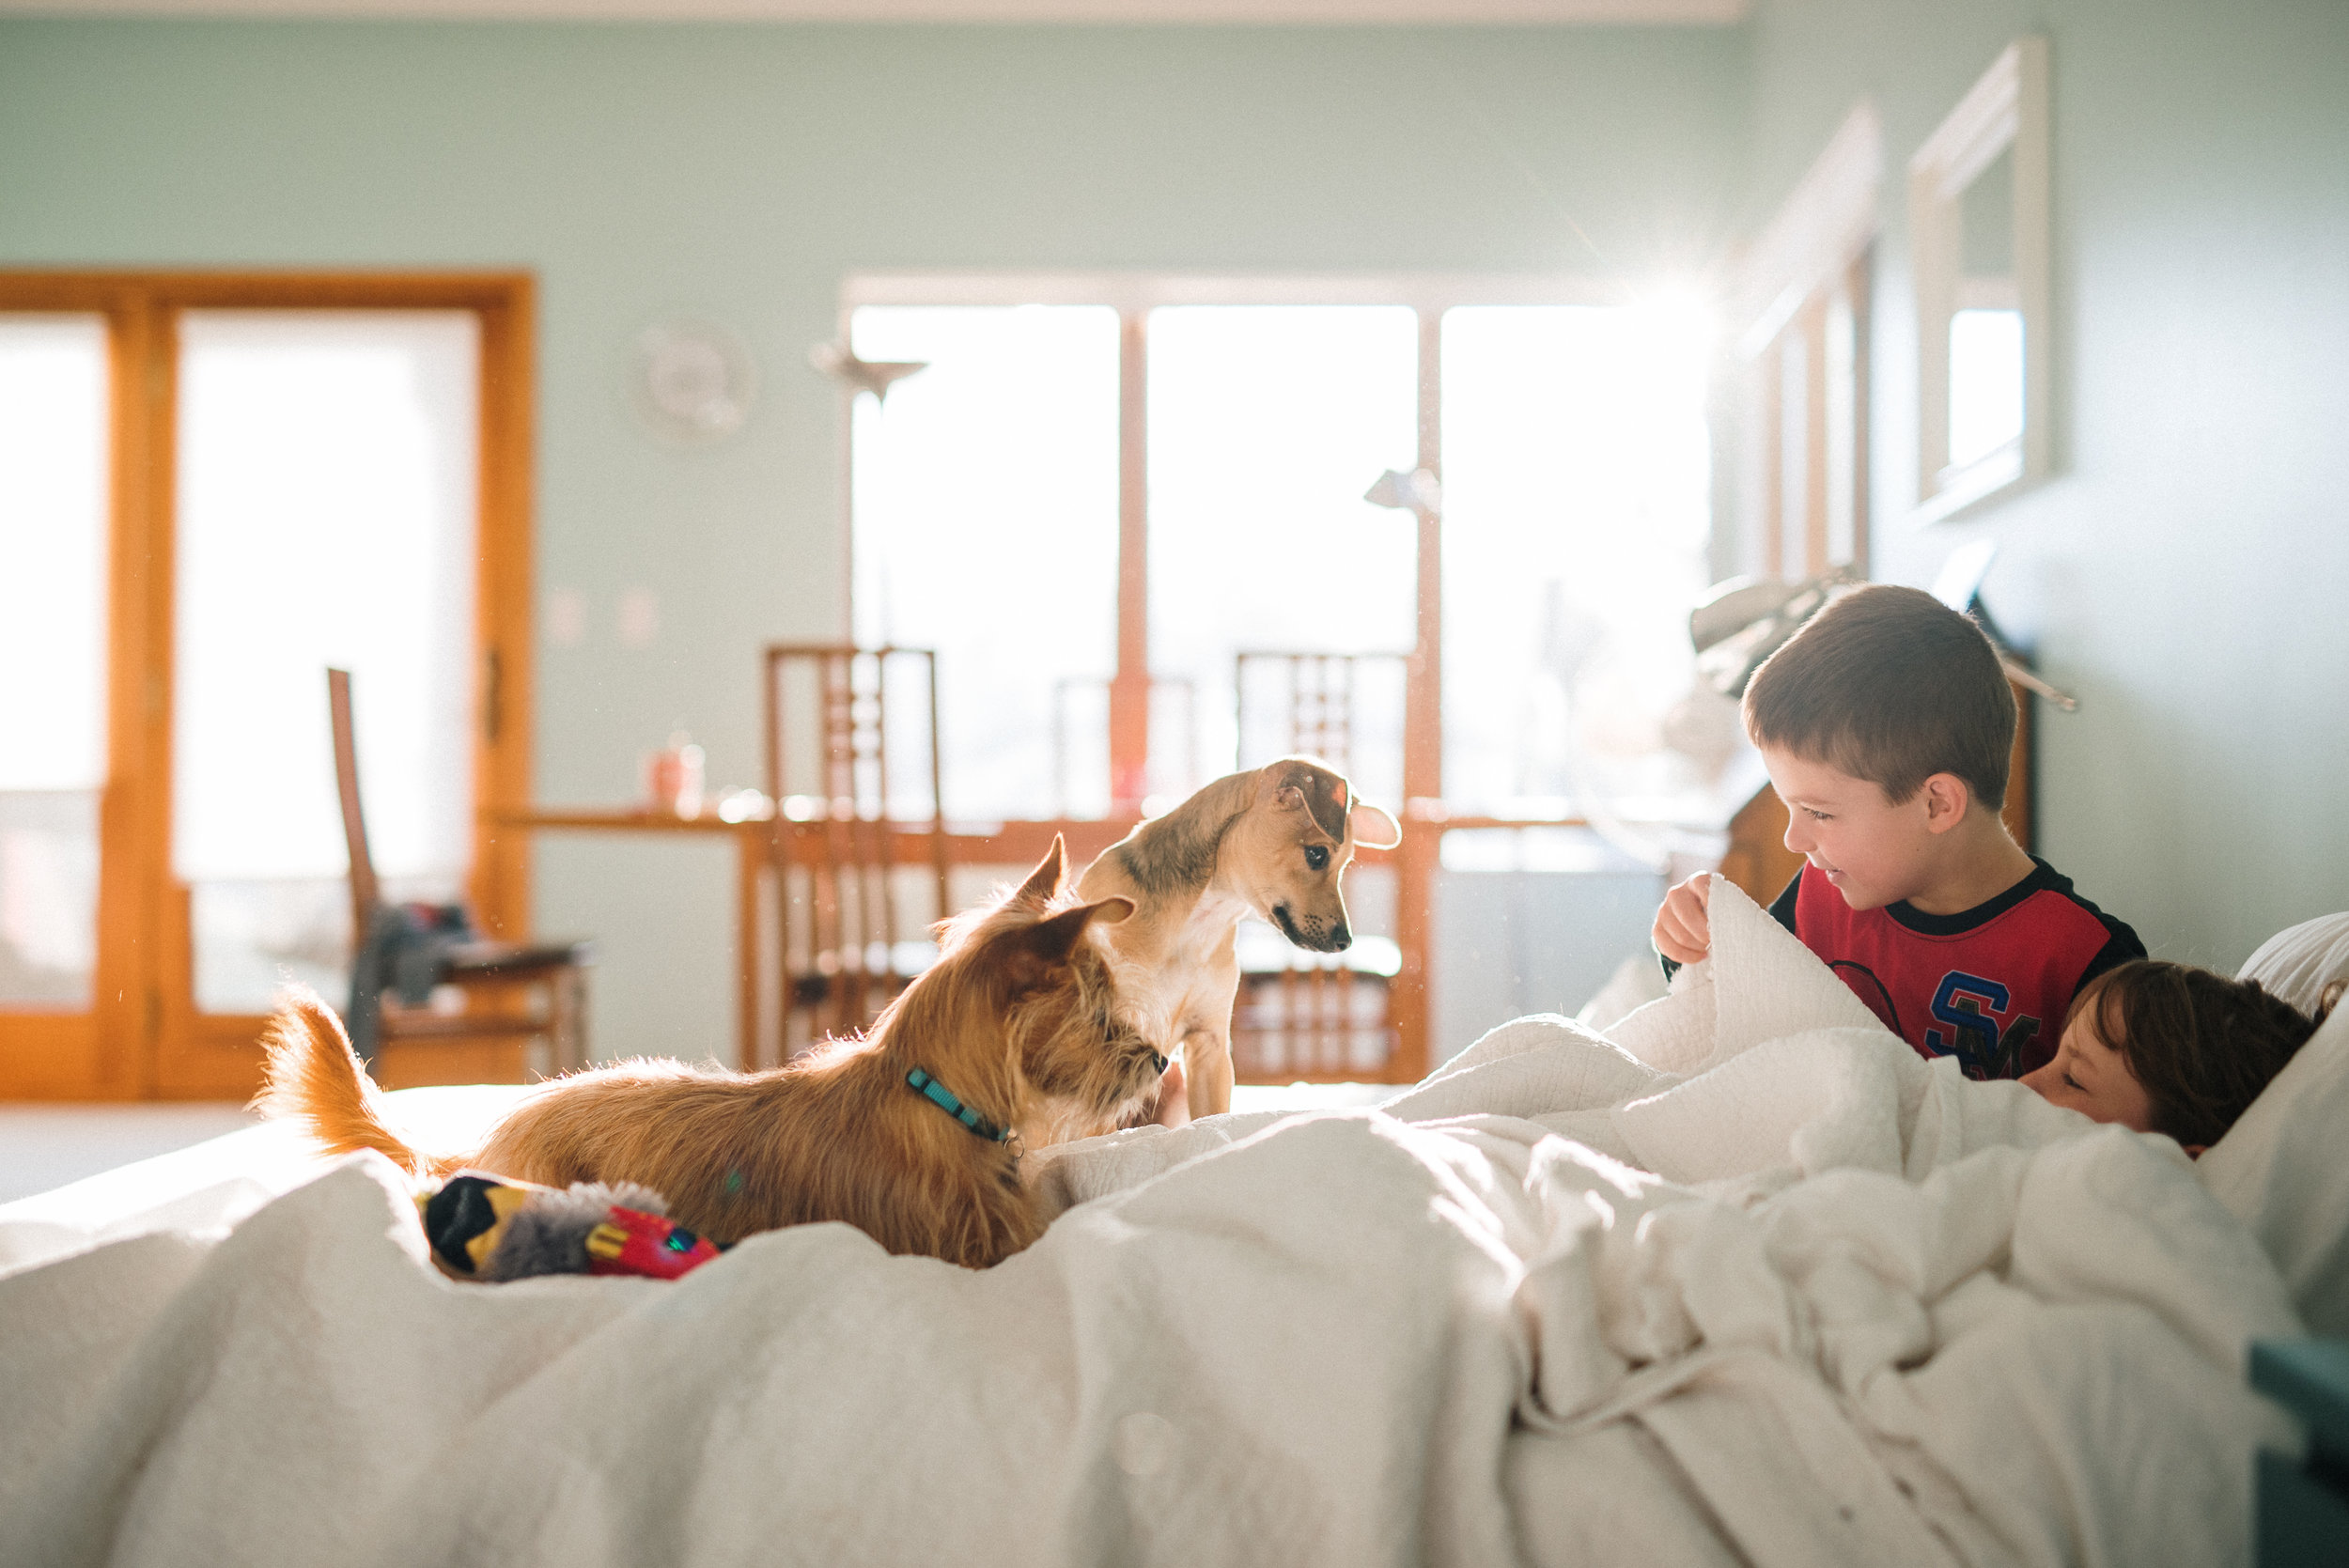 children with puppies in morning light_.jpg